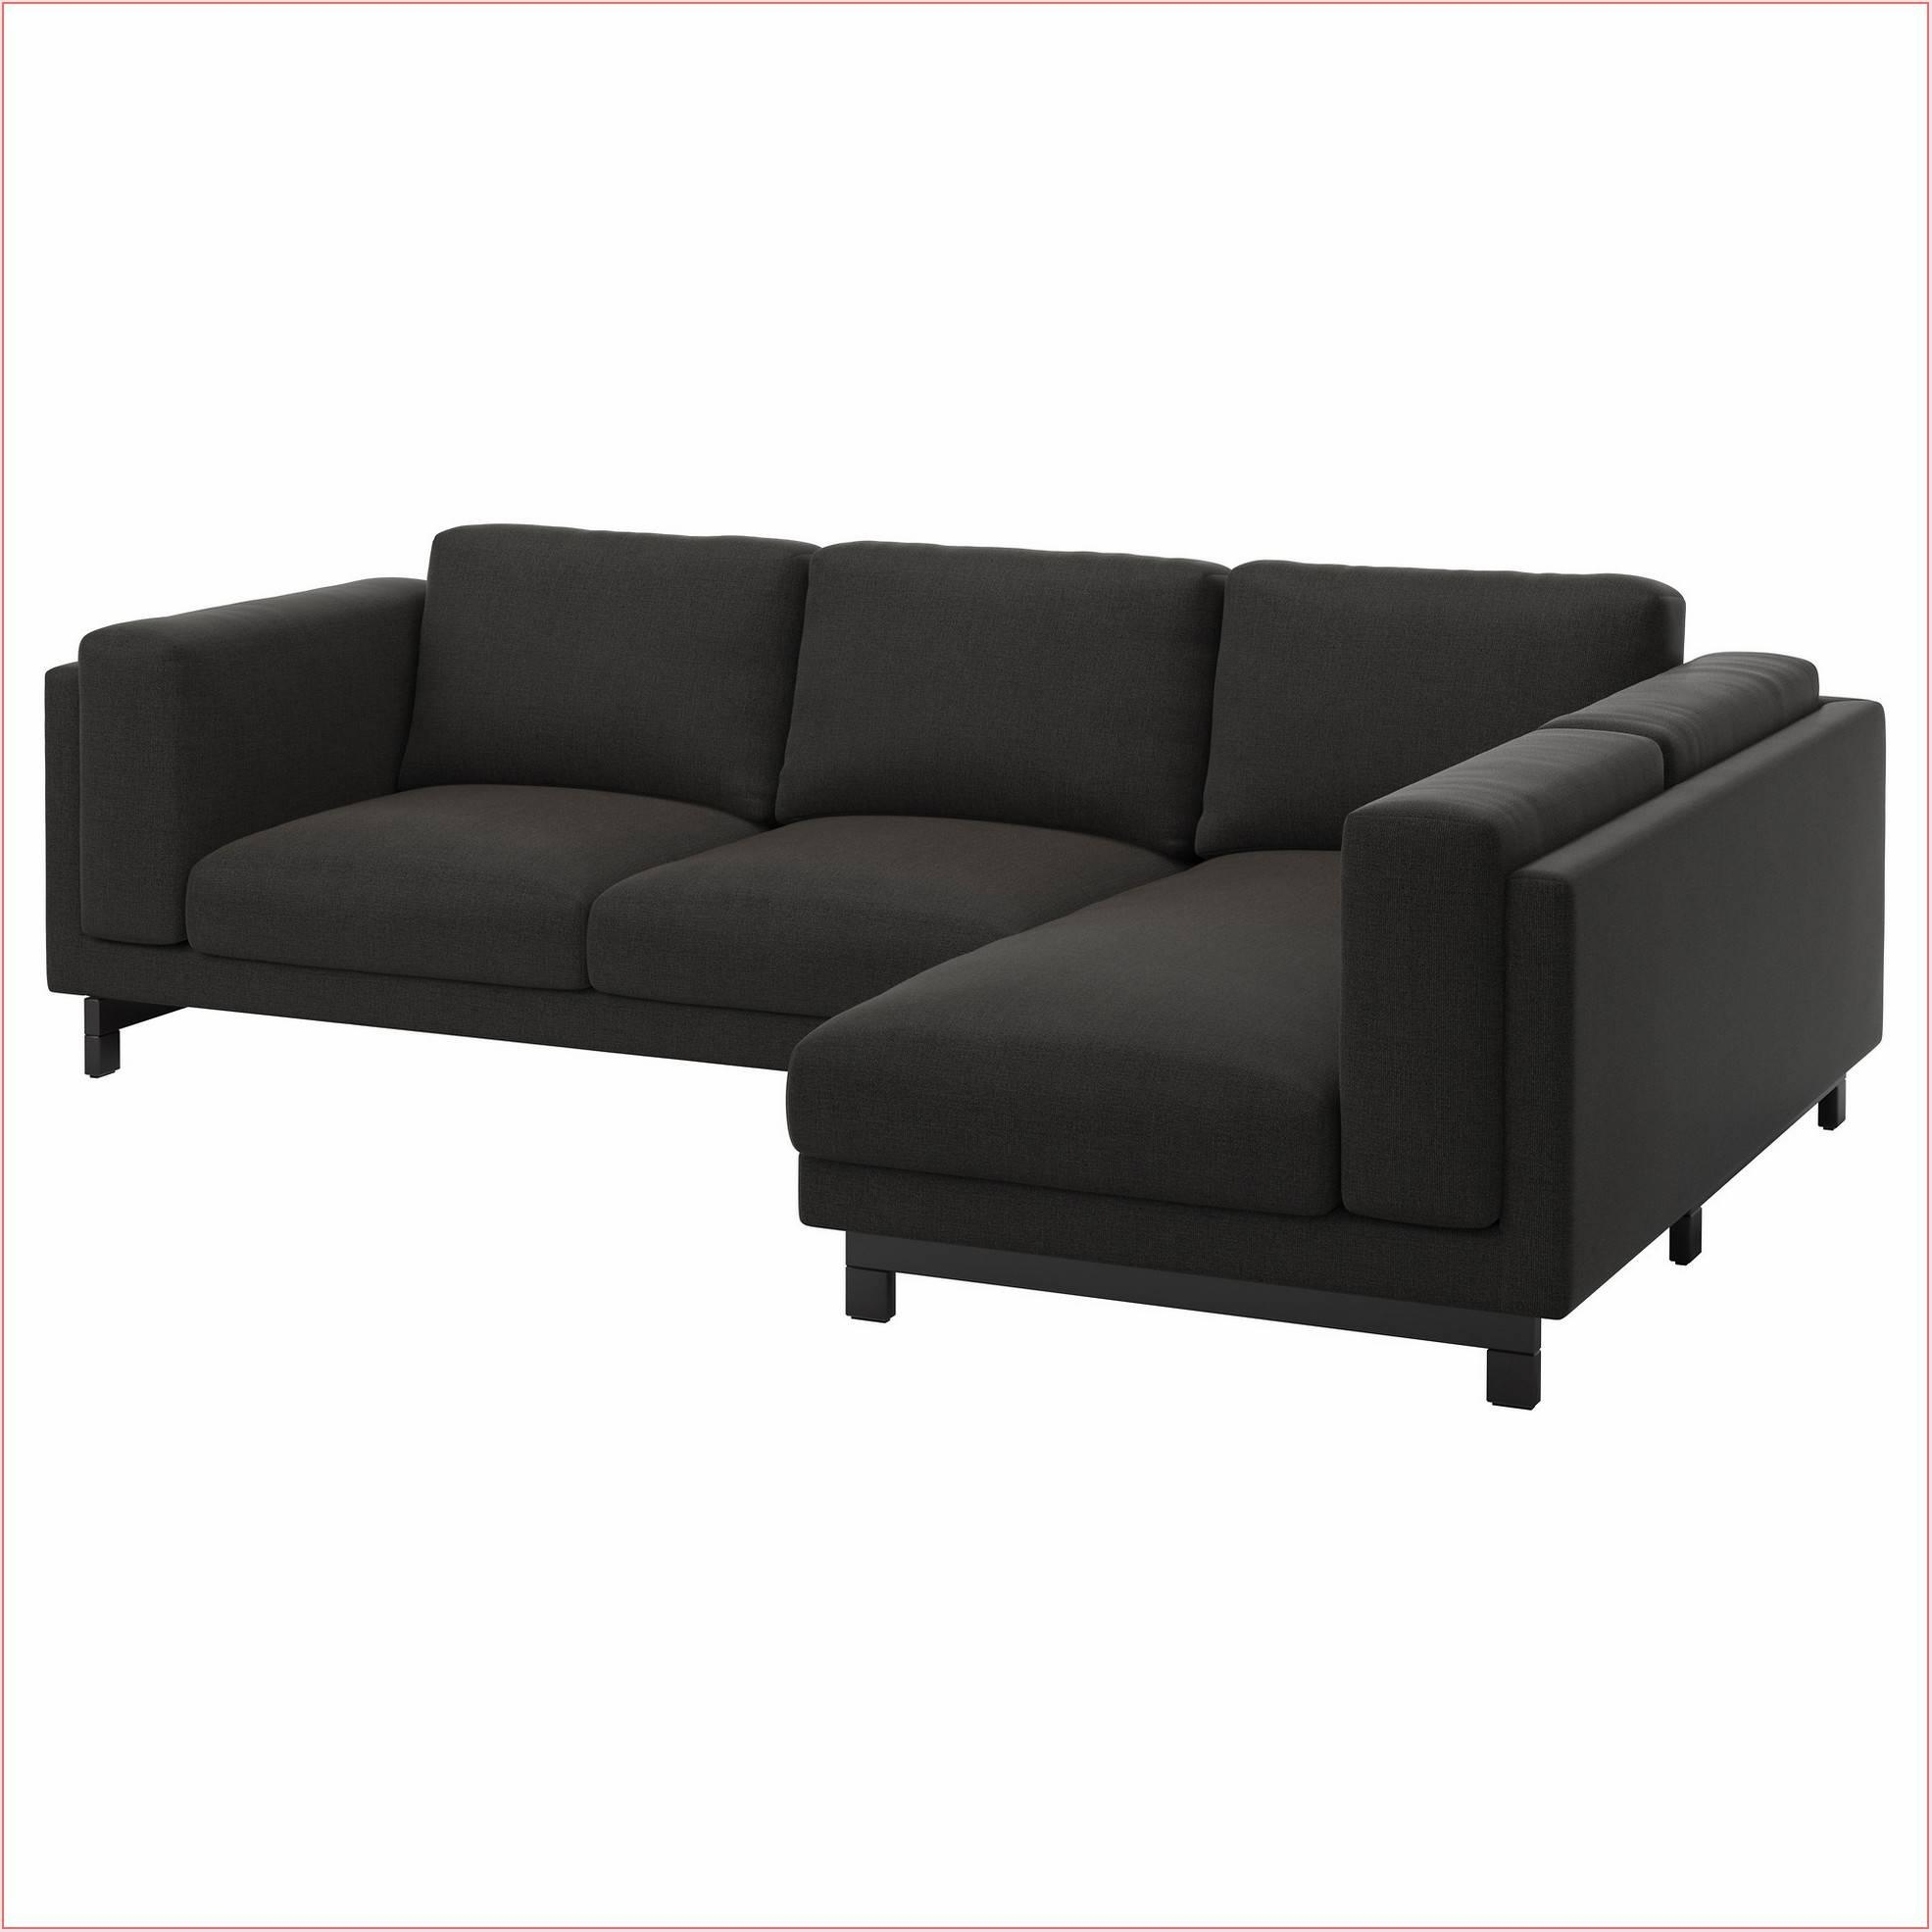 mccreary modern sofa mccreary modern at sofadealers sofas couches reclining thesofa. Black Bedroom Furniture Sets. Home Design Ideas